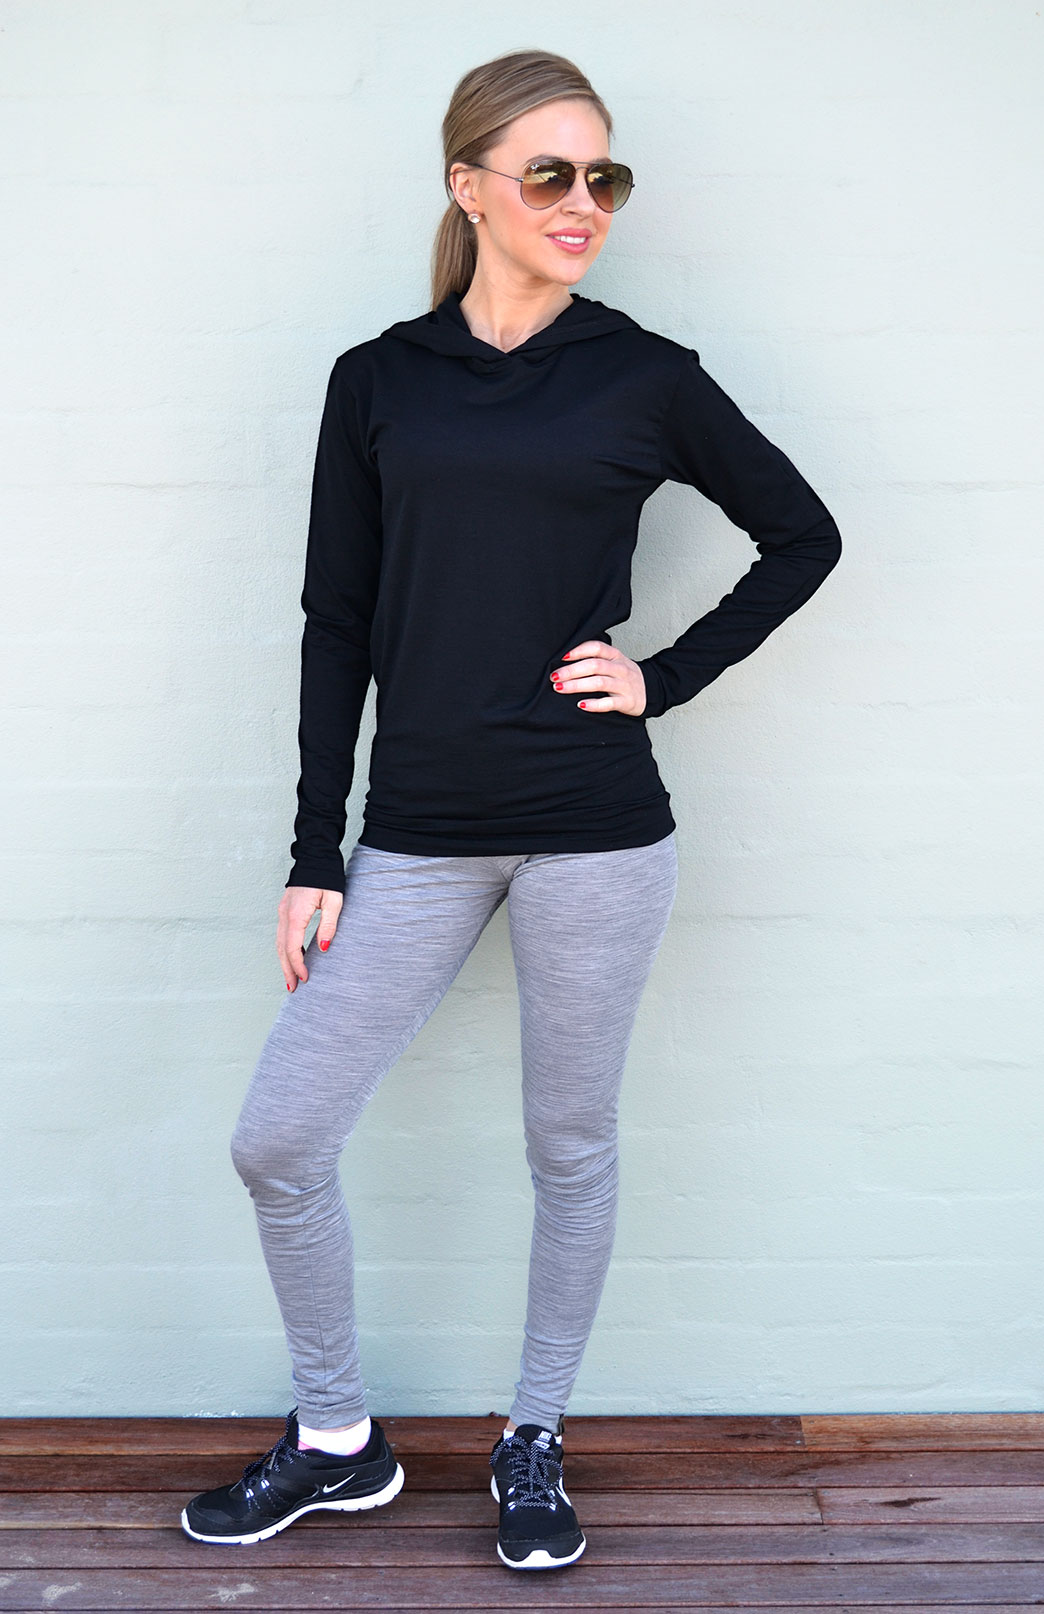 Leggings - Lightweight (180g) - Women's Light Grey Marl Pure Merino Wool Pull On Tights with Elastic Waistband - Smitten Merino Tasmania Australia